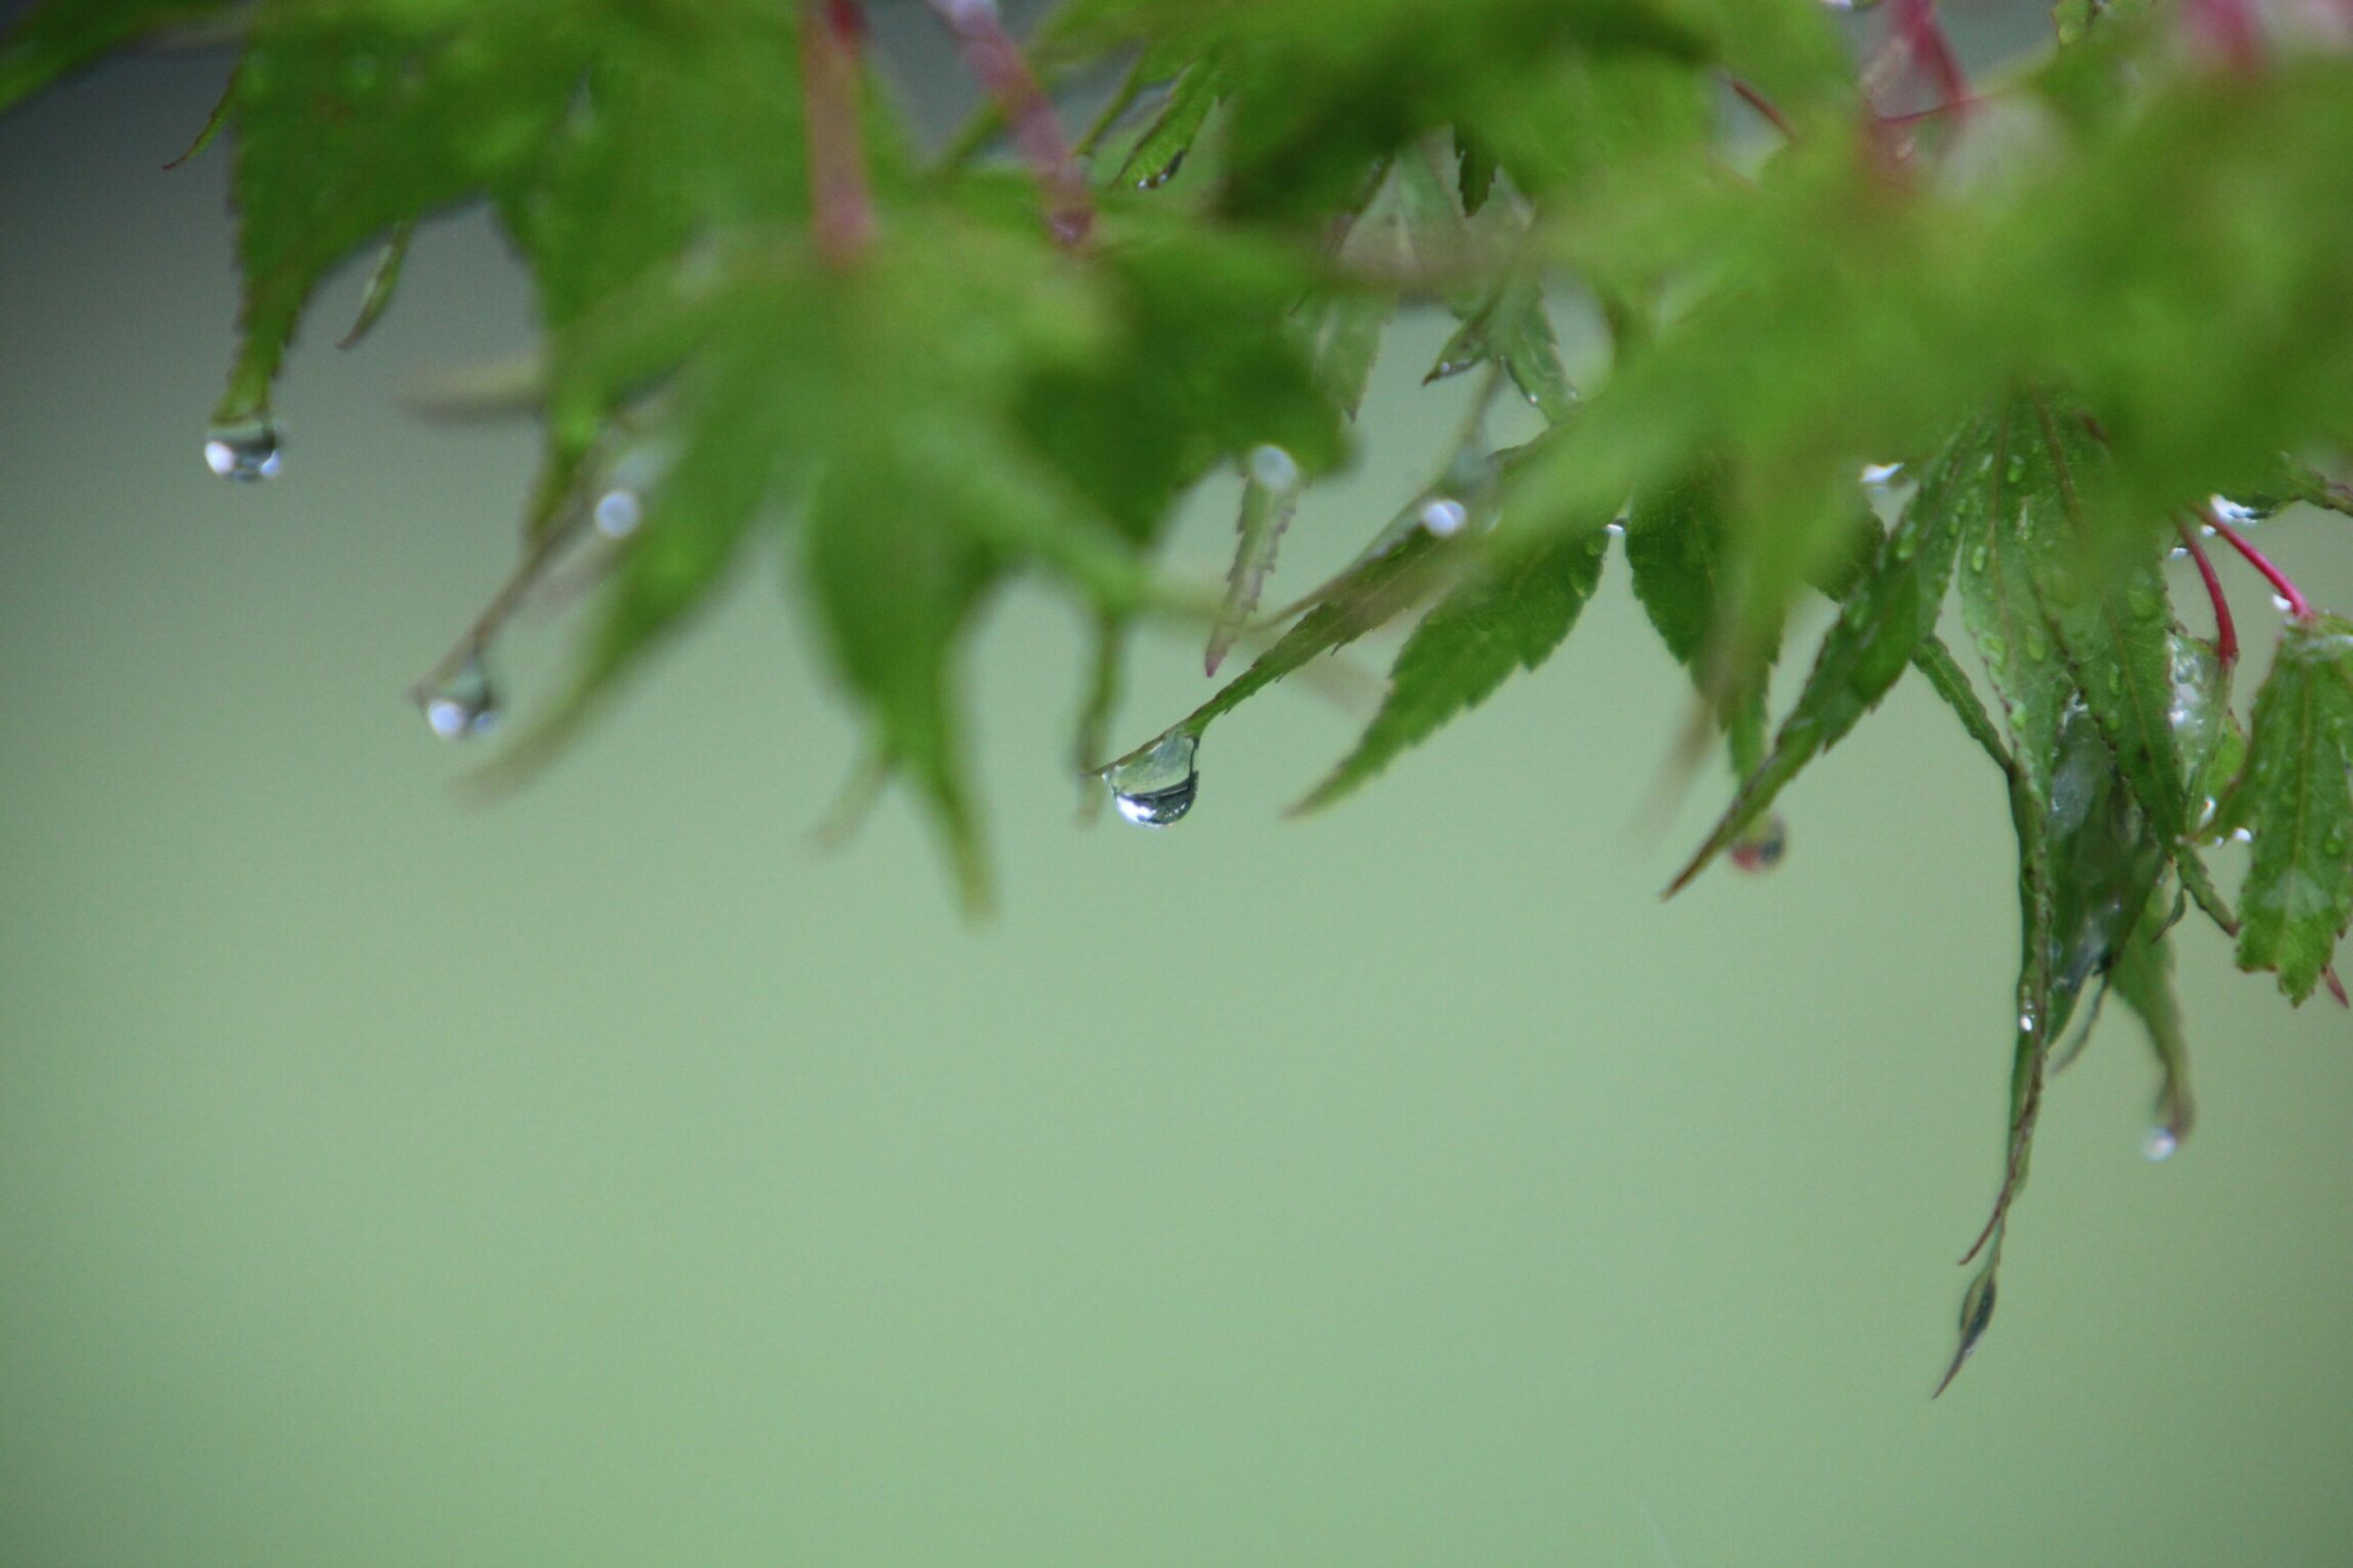 water, drop, leaf, close-up, growth, wet, freshness, green color, nature, plant, beauty in nature, fragility, focus on foreground, dew, selective focus, purity, no people, day, green, raindrop